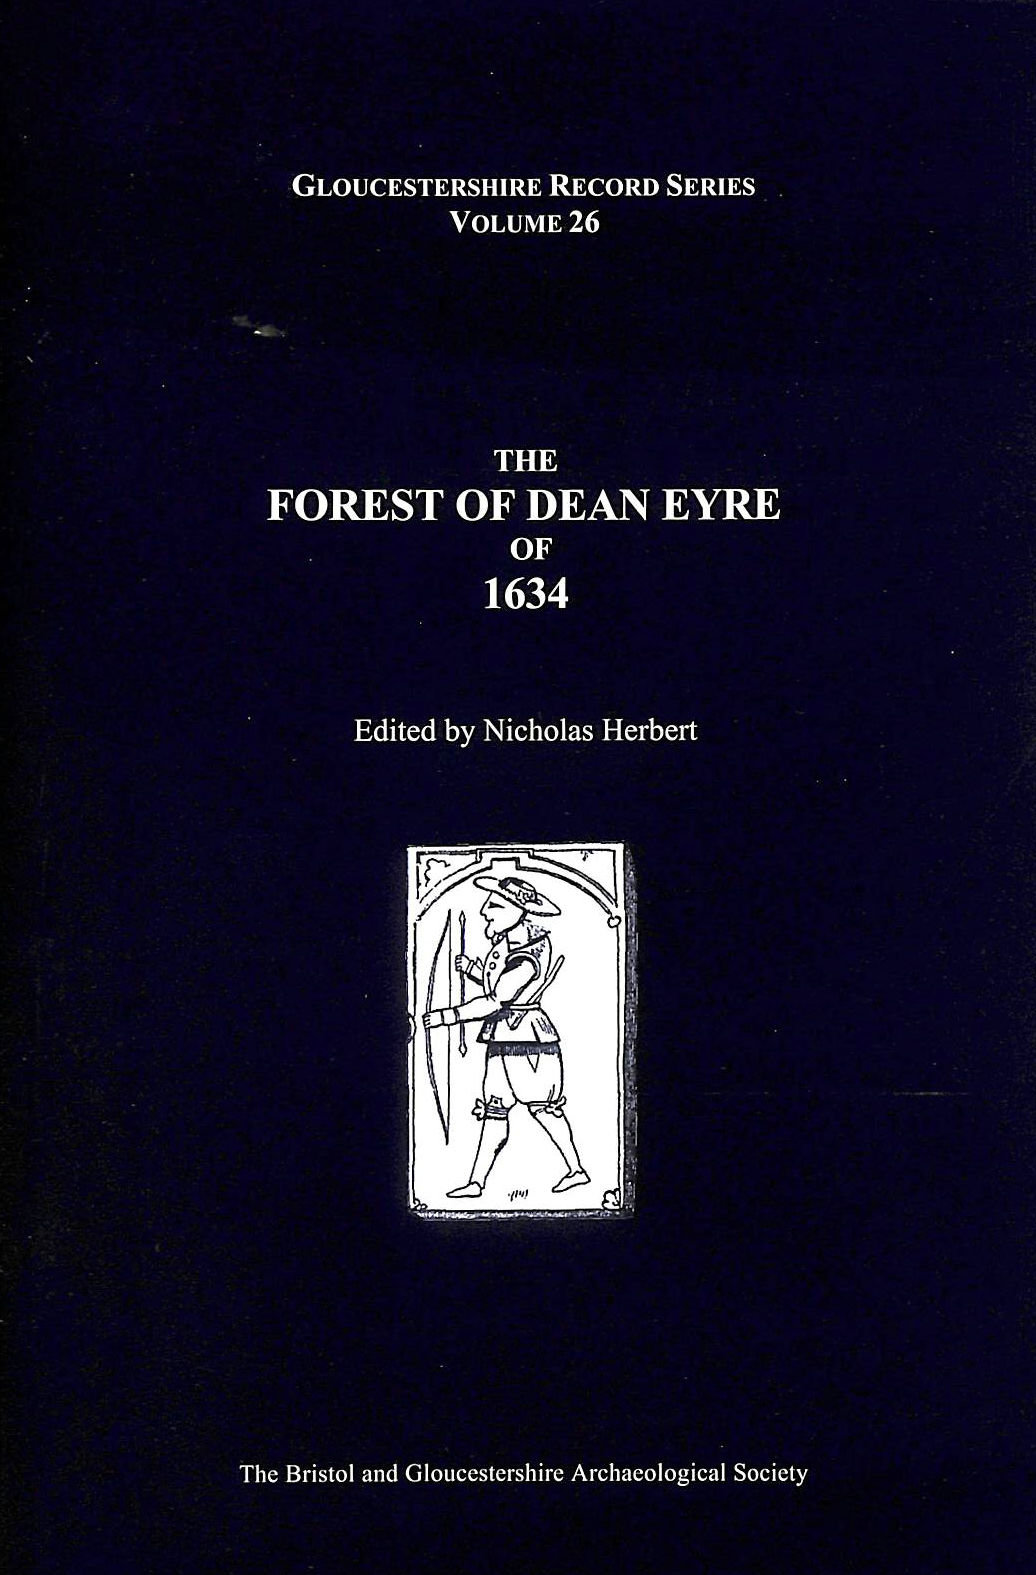 Image for The Forest of Dean Eyre of 1634 (Gloucestershire Record Series)